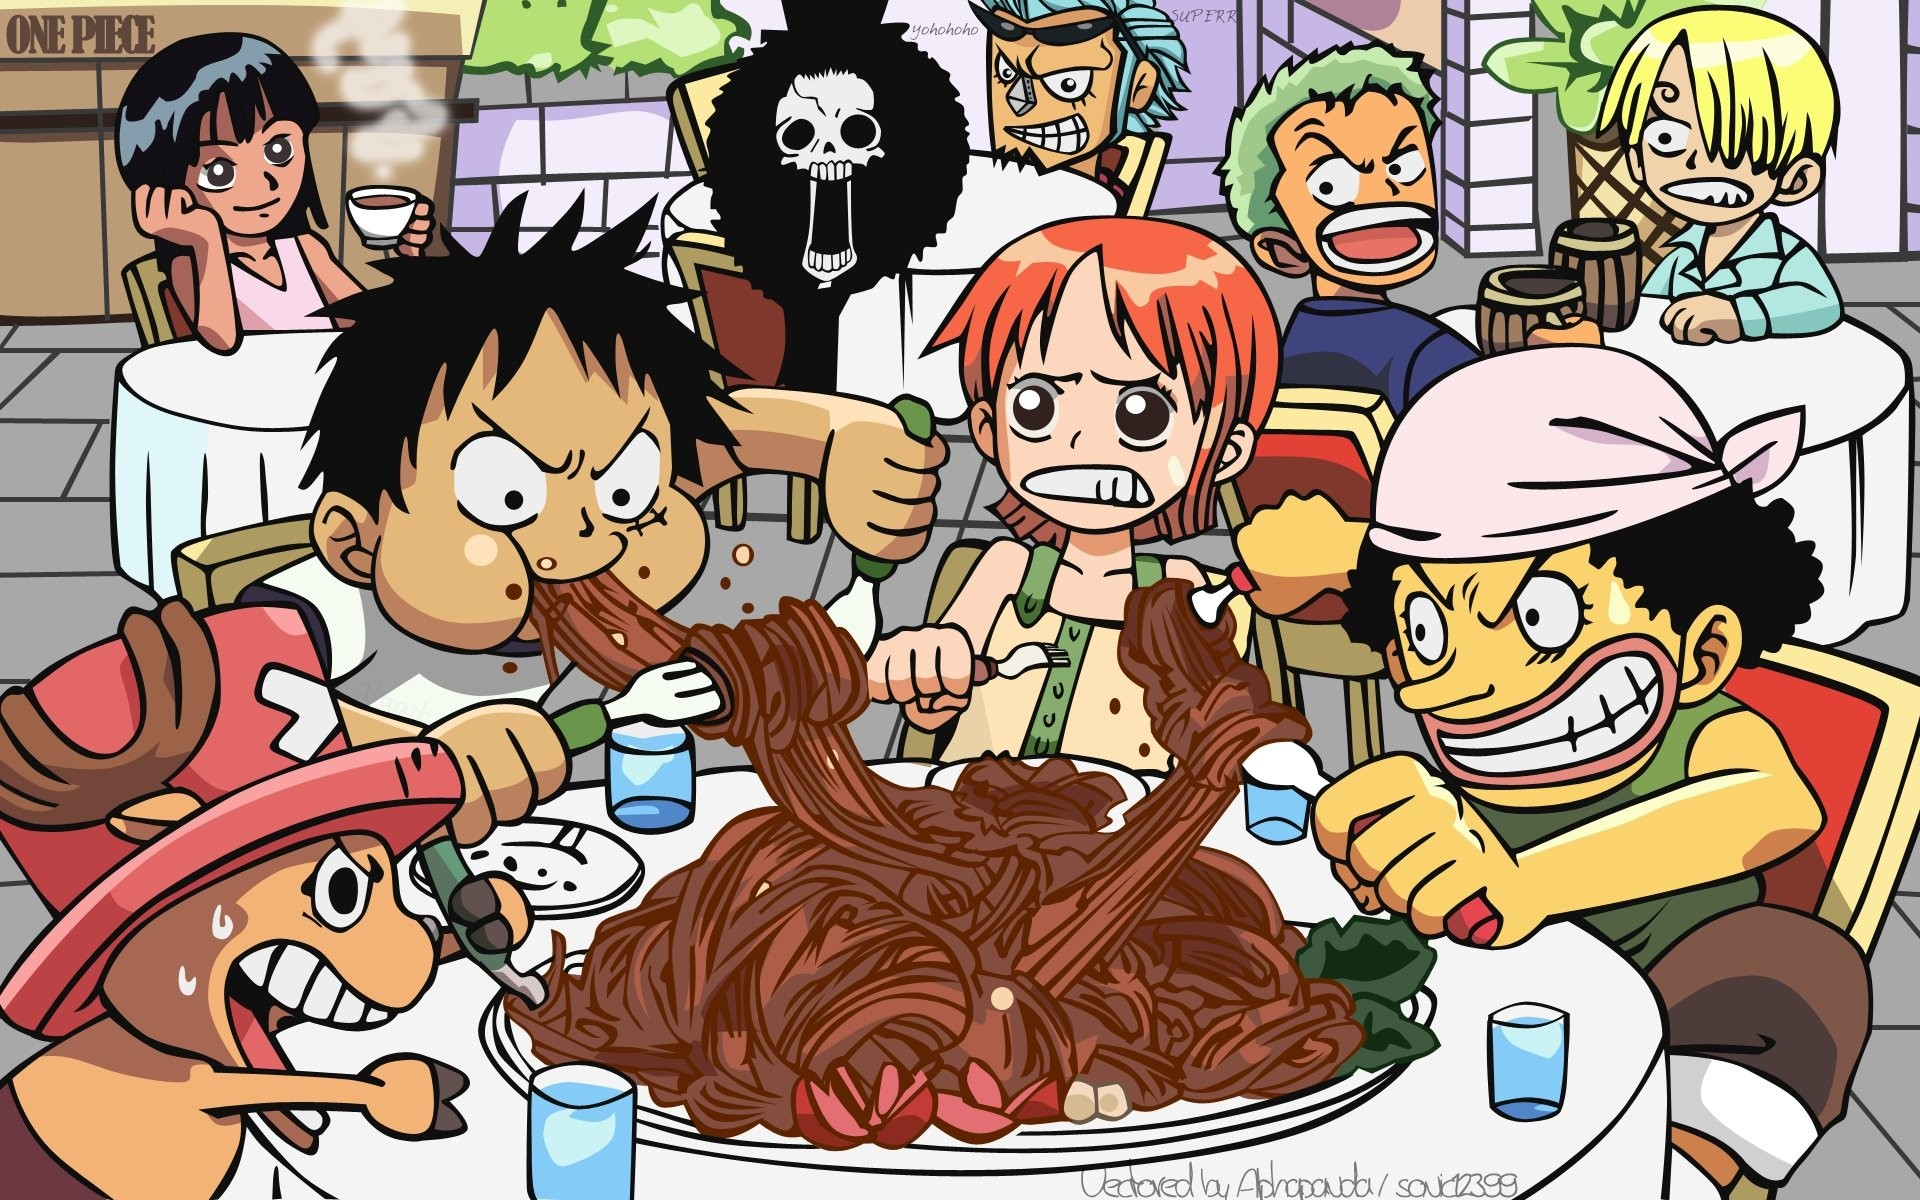 2268x1175 Wallpapers For One Piece New World Wallpaper Chibi